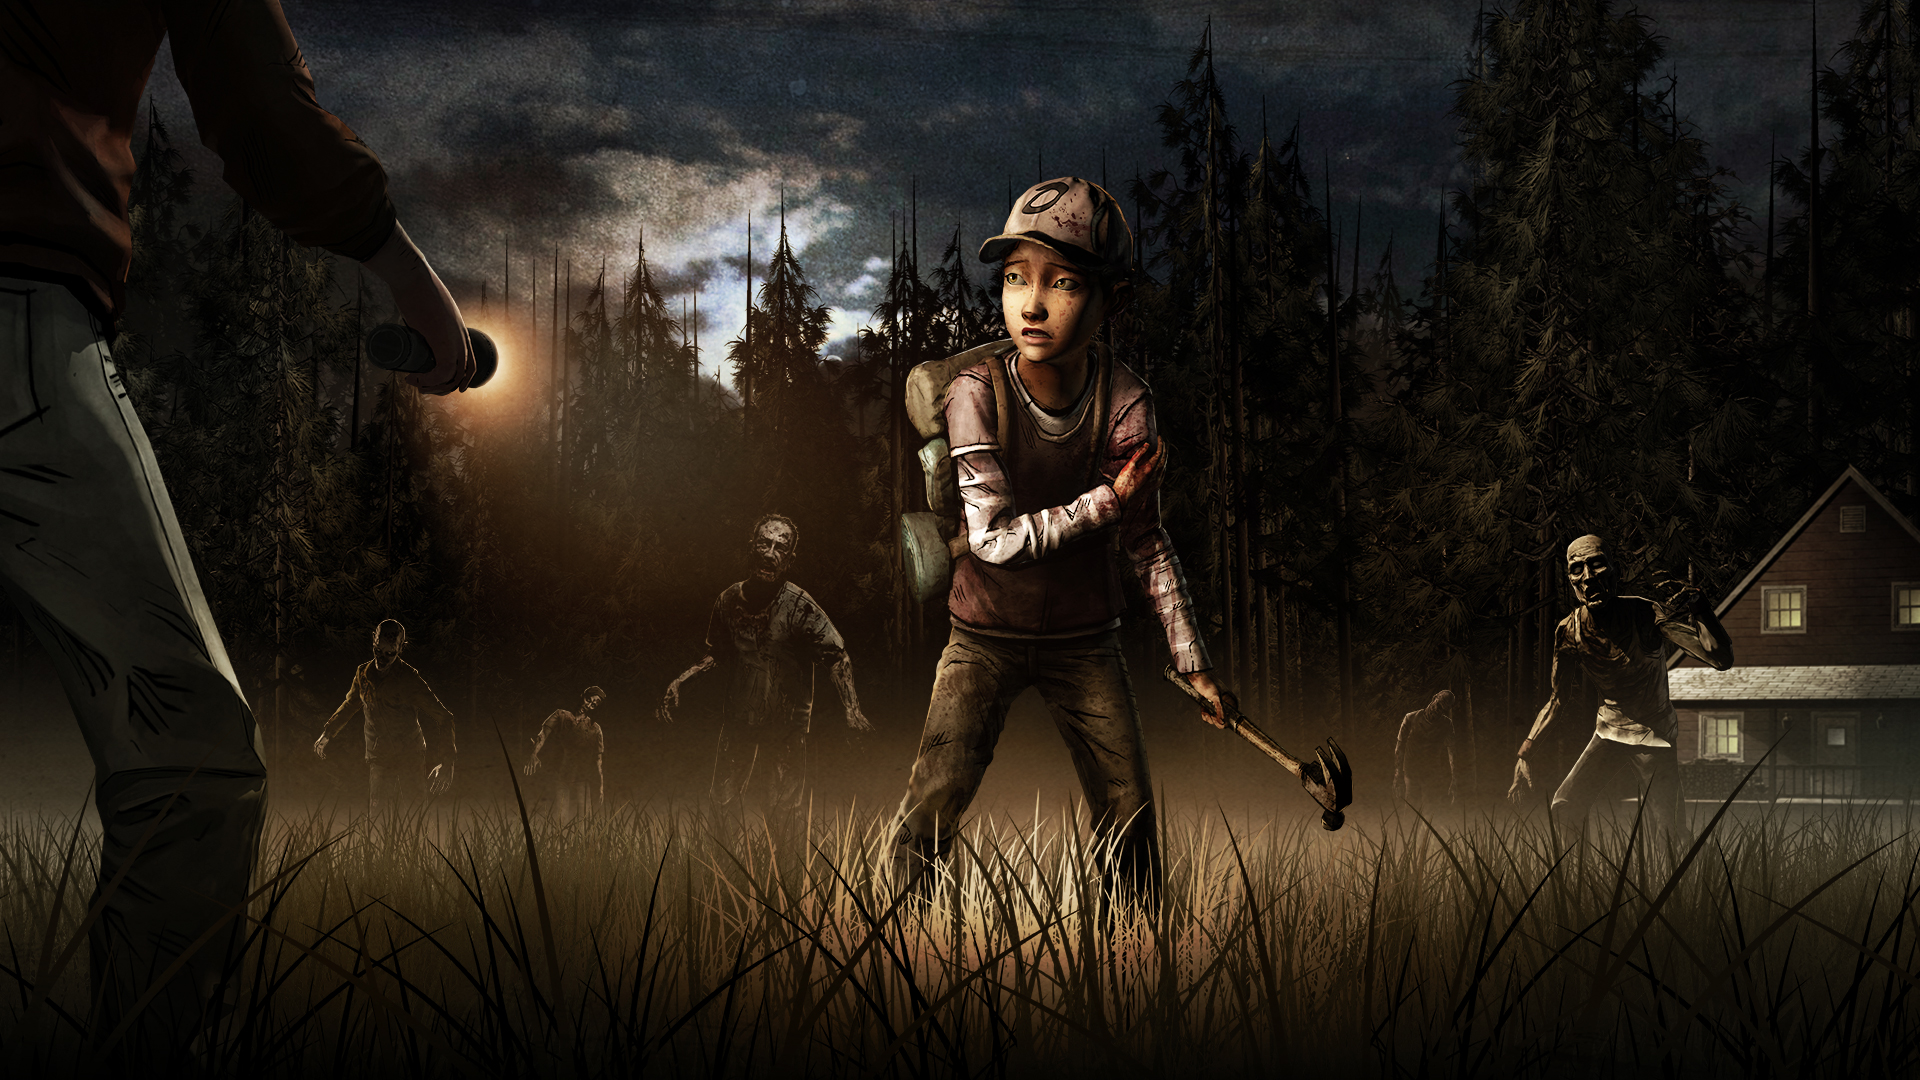 Telltale's The Walking Dead: Season 3 is expected to premiere later this year